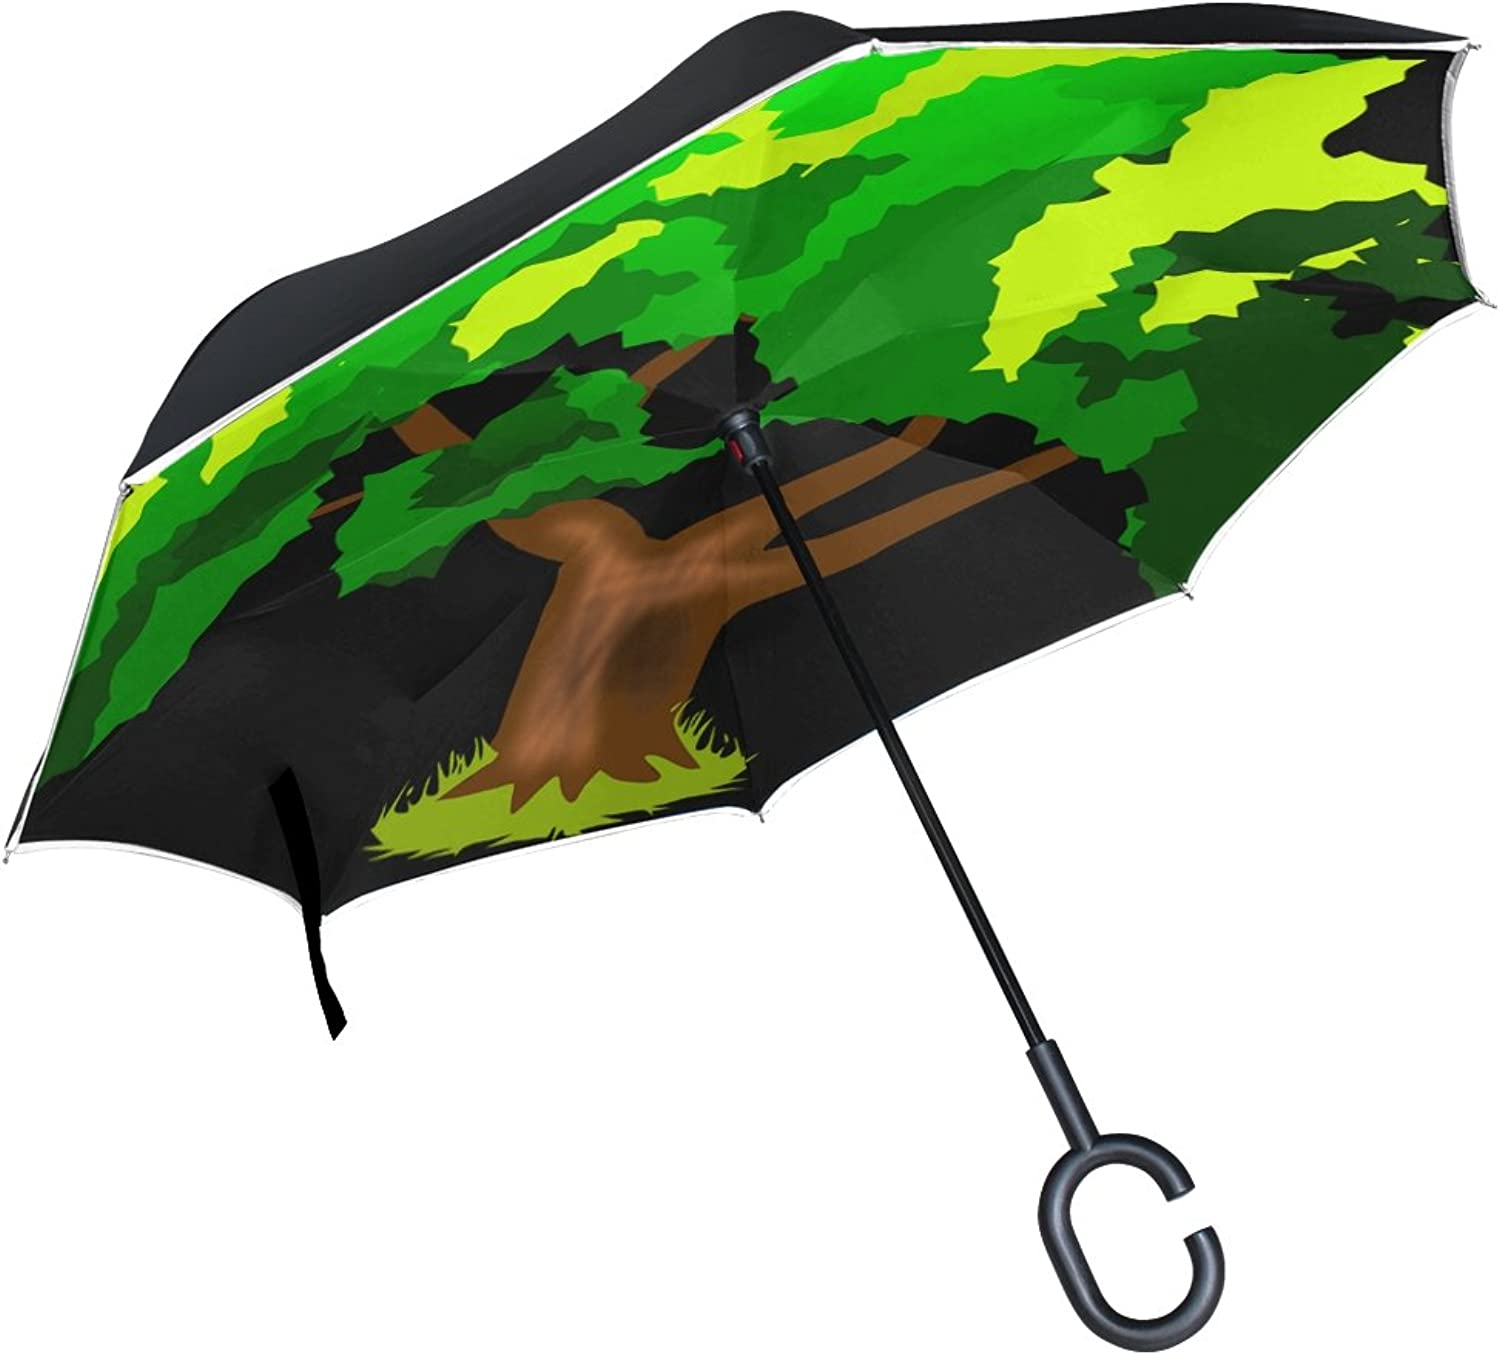 Double Layer Ingreened Plant Tree Green Trunk Leaves Spring Summer Umbrellas Reverse Folding Umbrella Windproof Uv Predection Big Straight Umbrella for Car Rain Outdoor with CShaped Handle